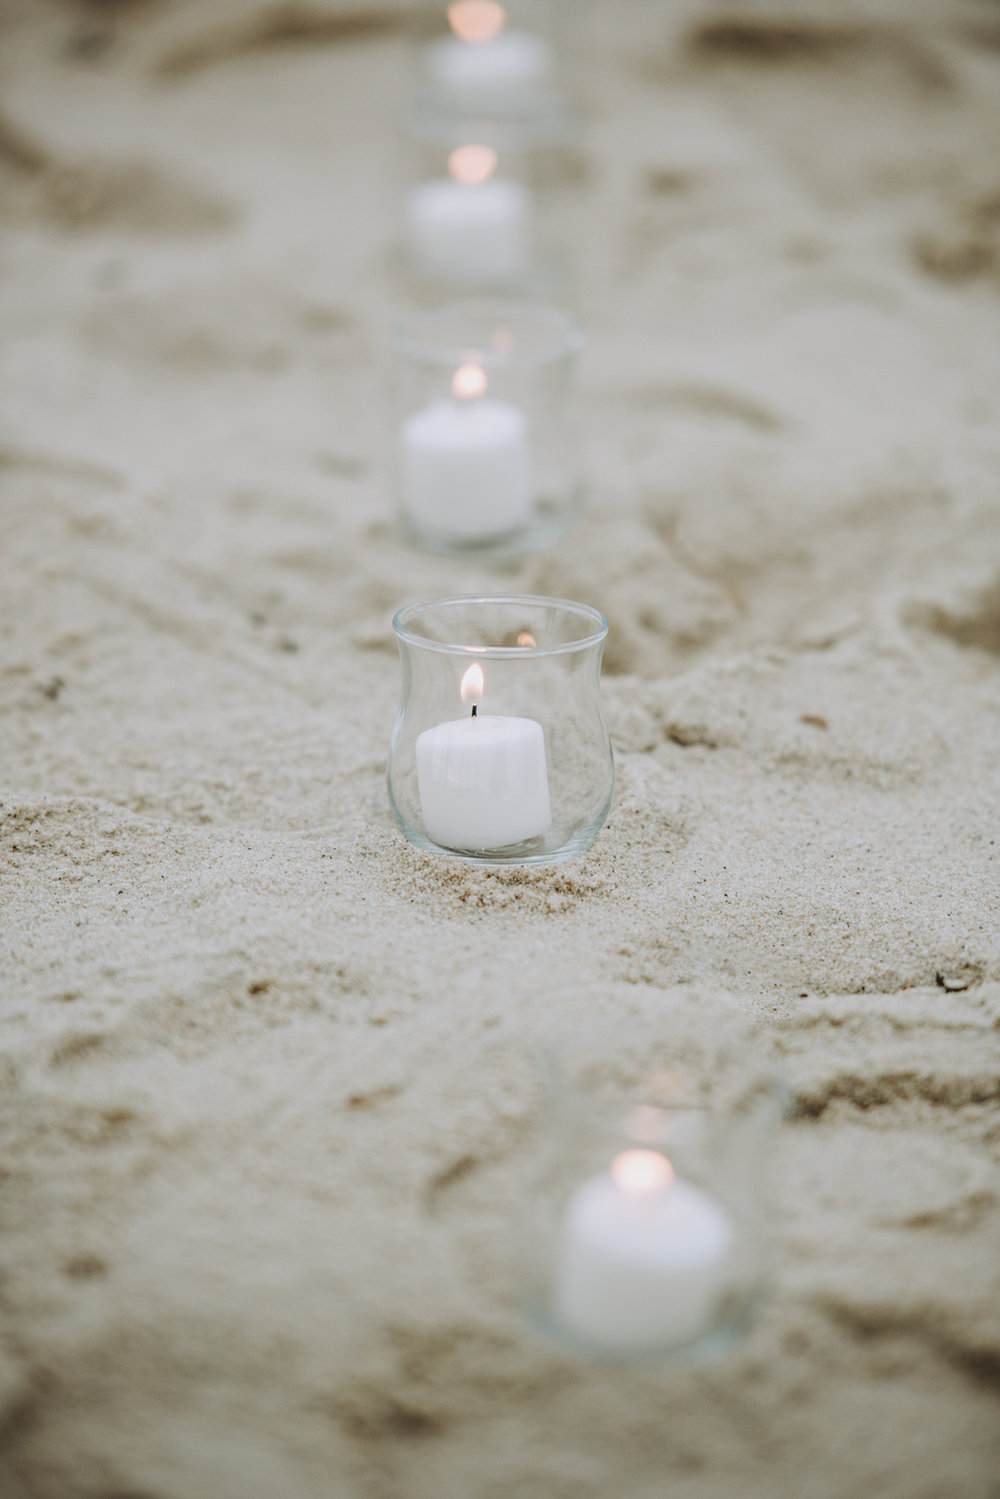 len_lynne_wedding__ceremony_details_lamberts_cove_beach_west_tisbury--2176.jpg